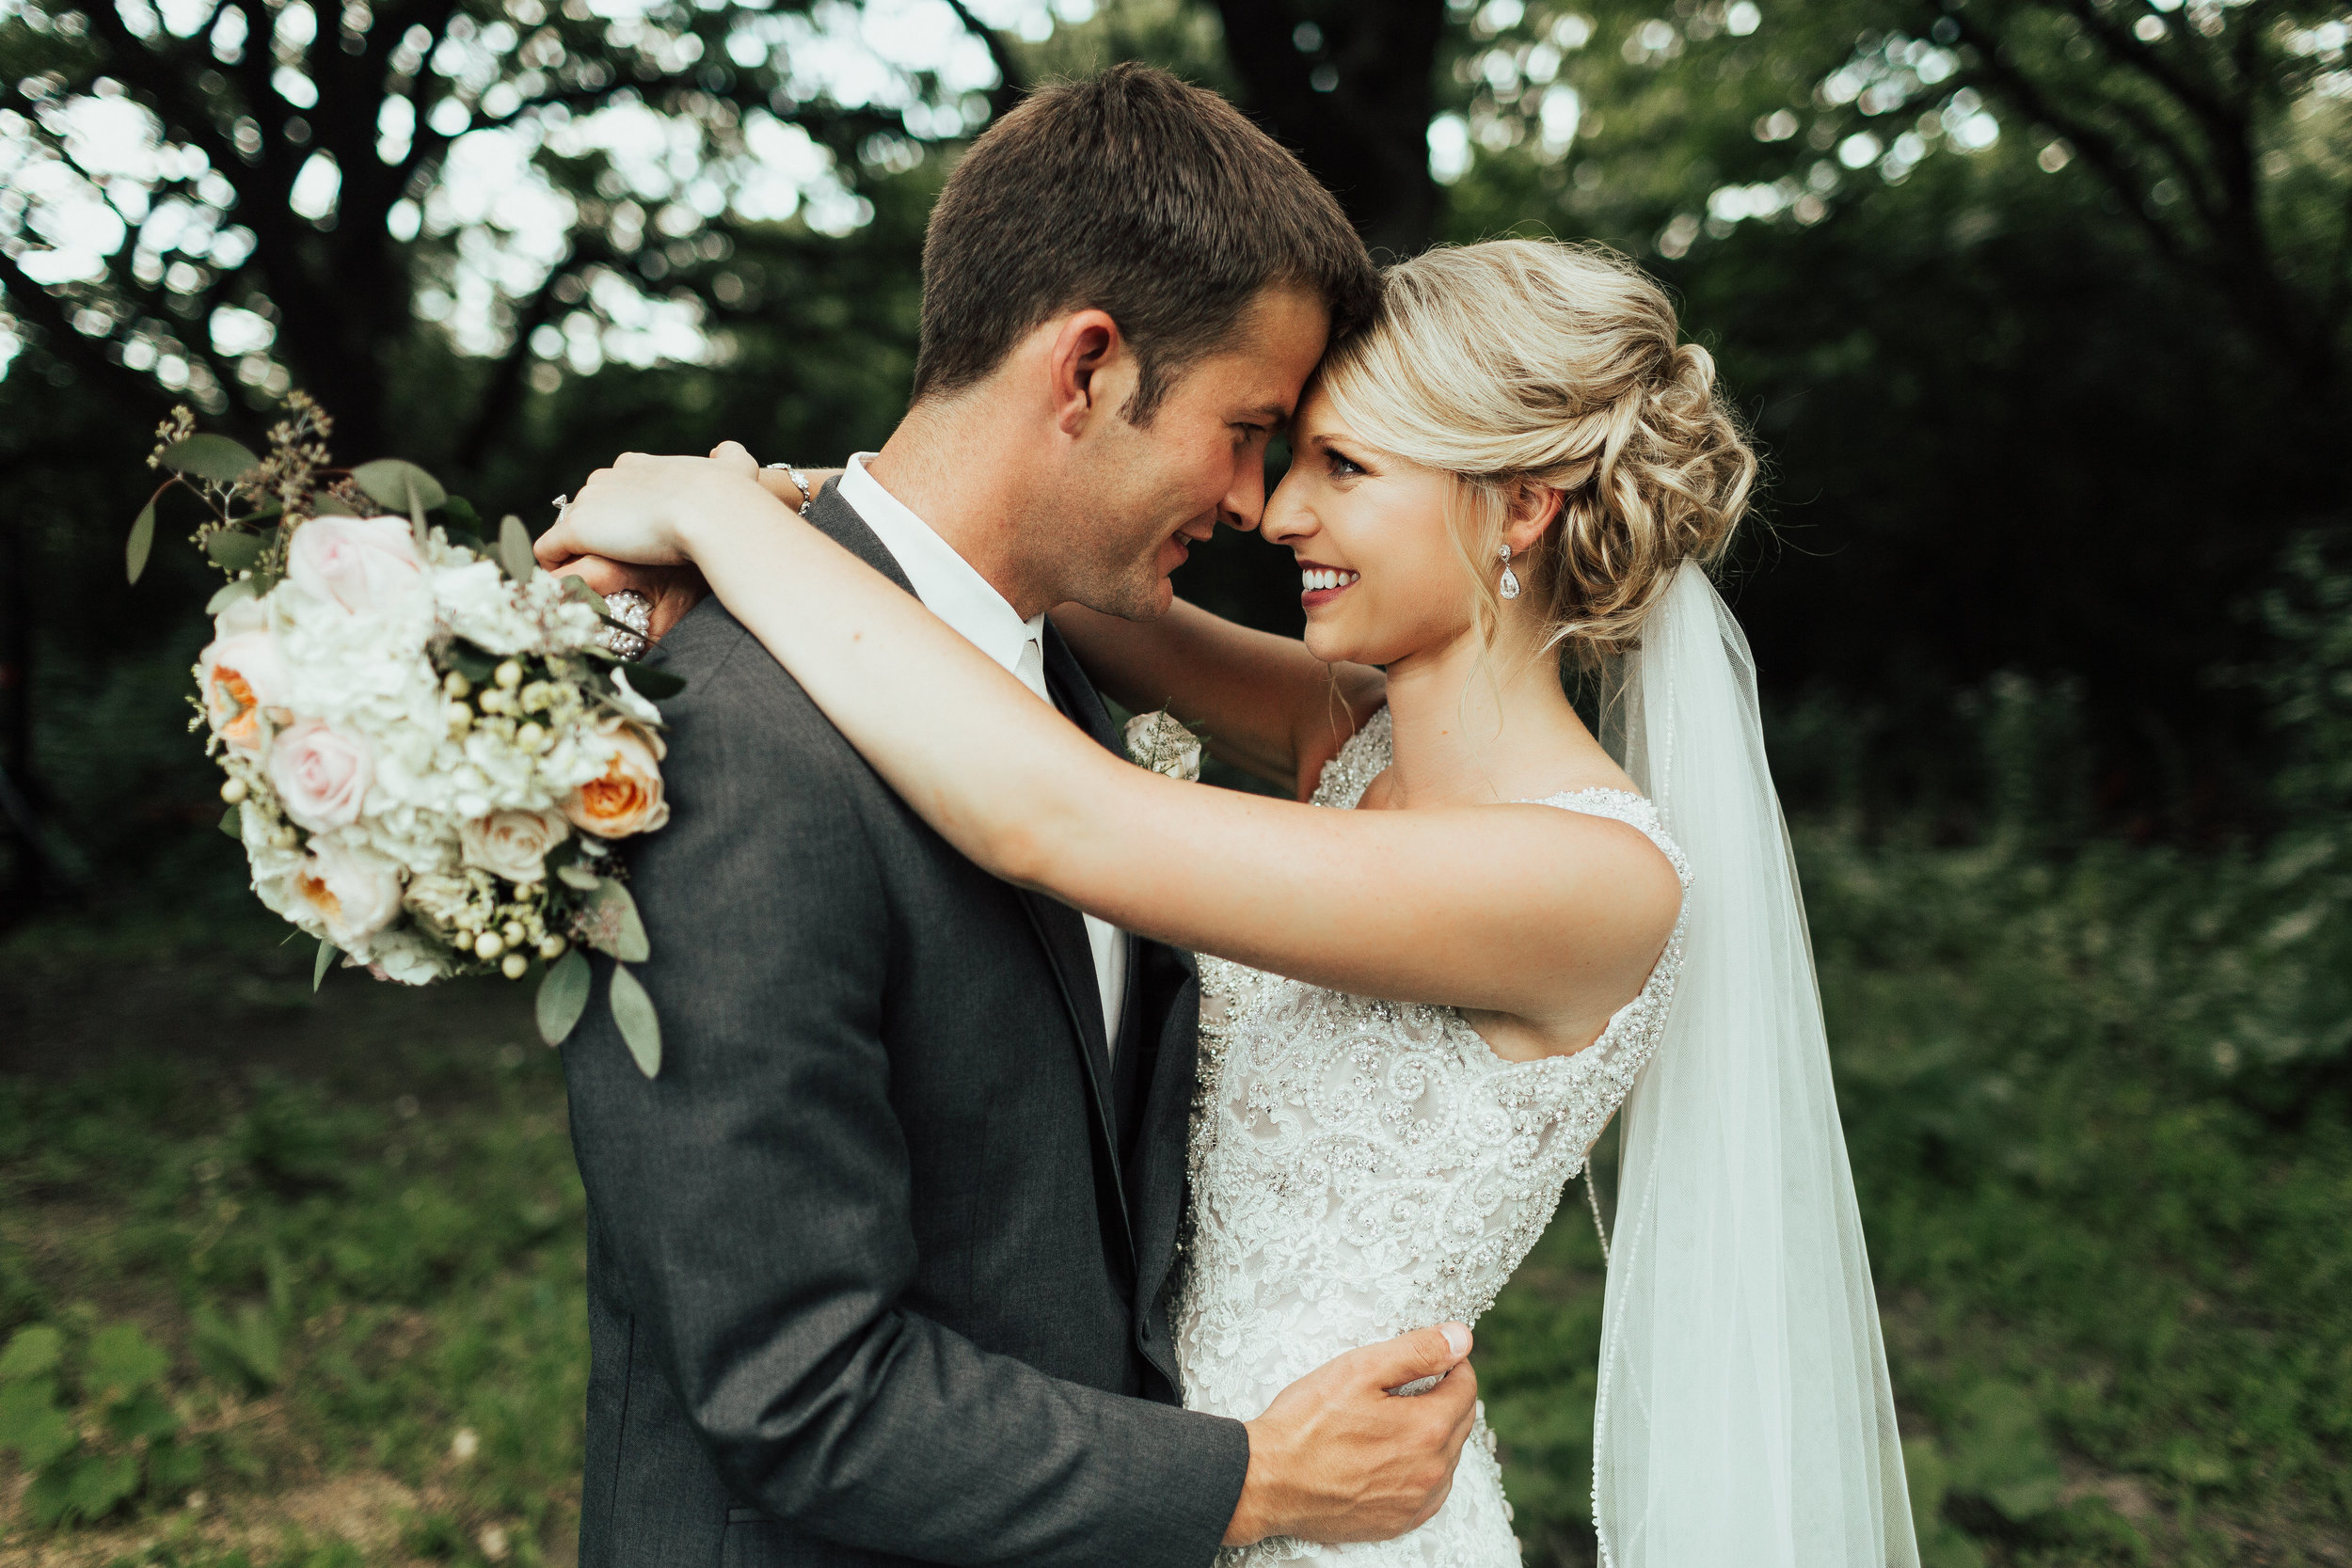 bride and groom just married photo | Janelle Elise Photography | Sixpence Events day of coordinating | wedding blog | wedding planned and rentals by A Vintage Touch Weddings